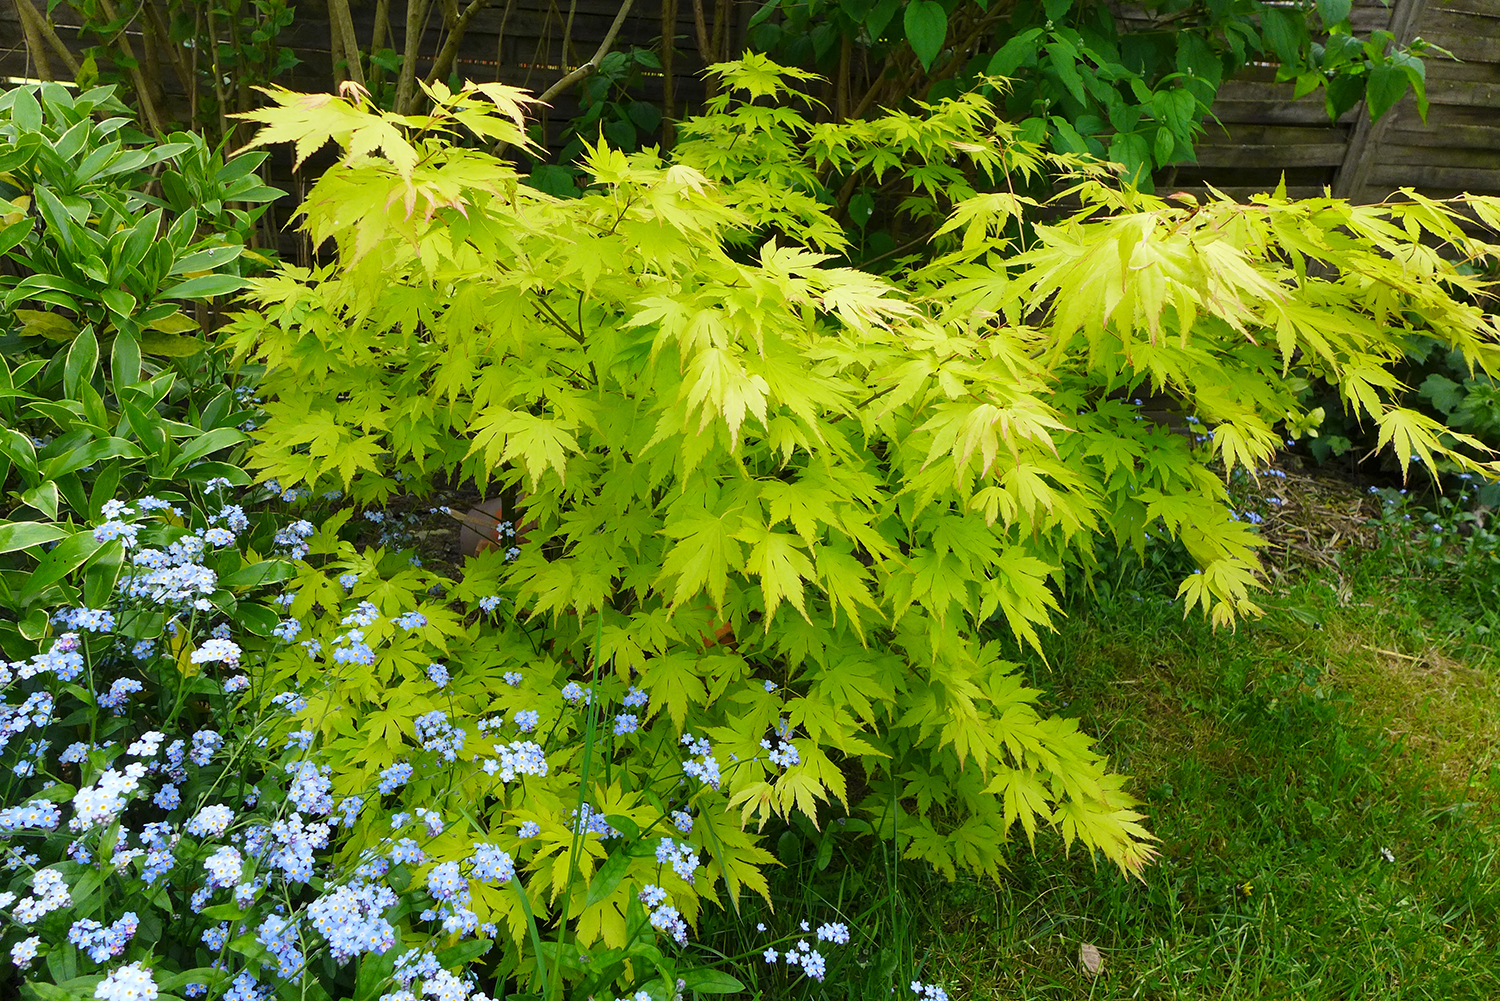 Acer palmatum 'Orange dream' au printemps